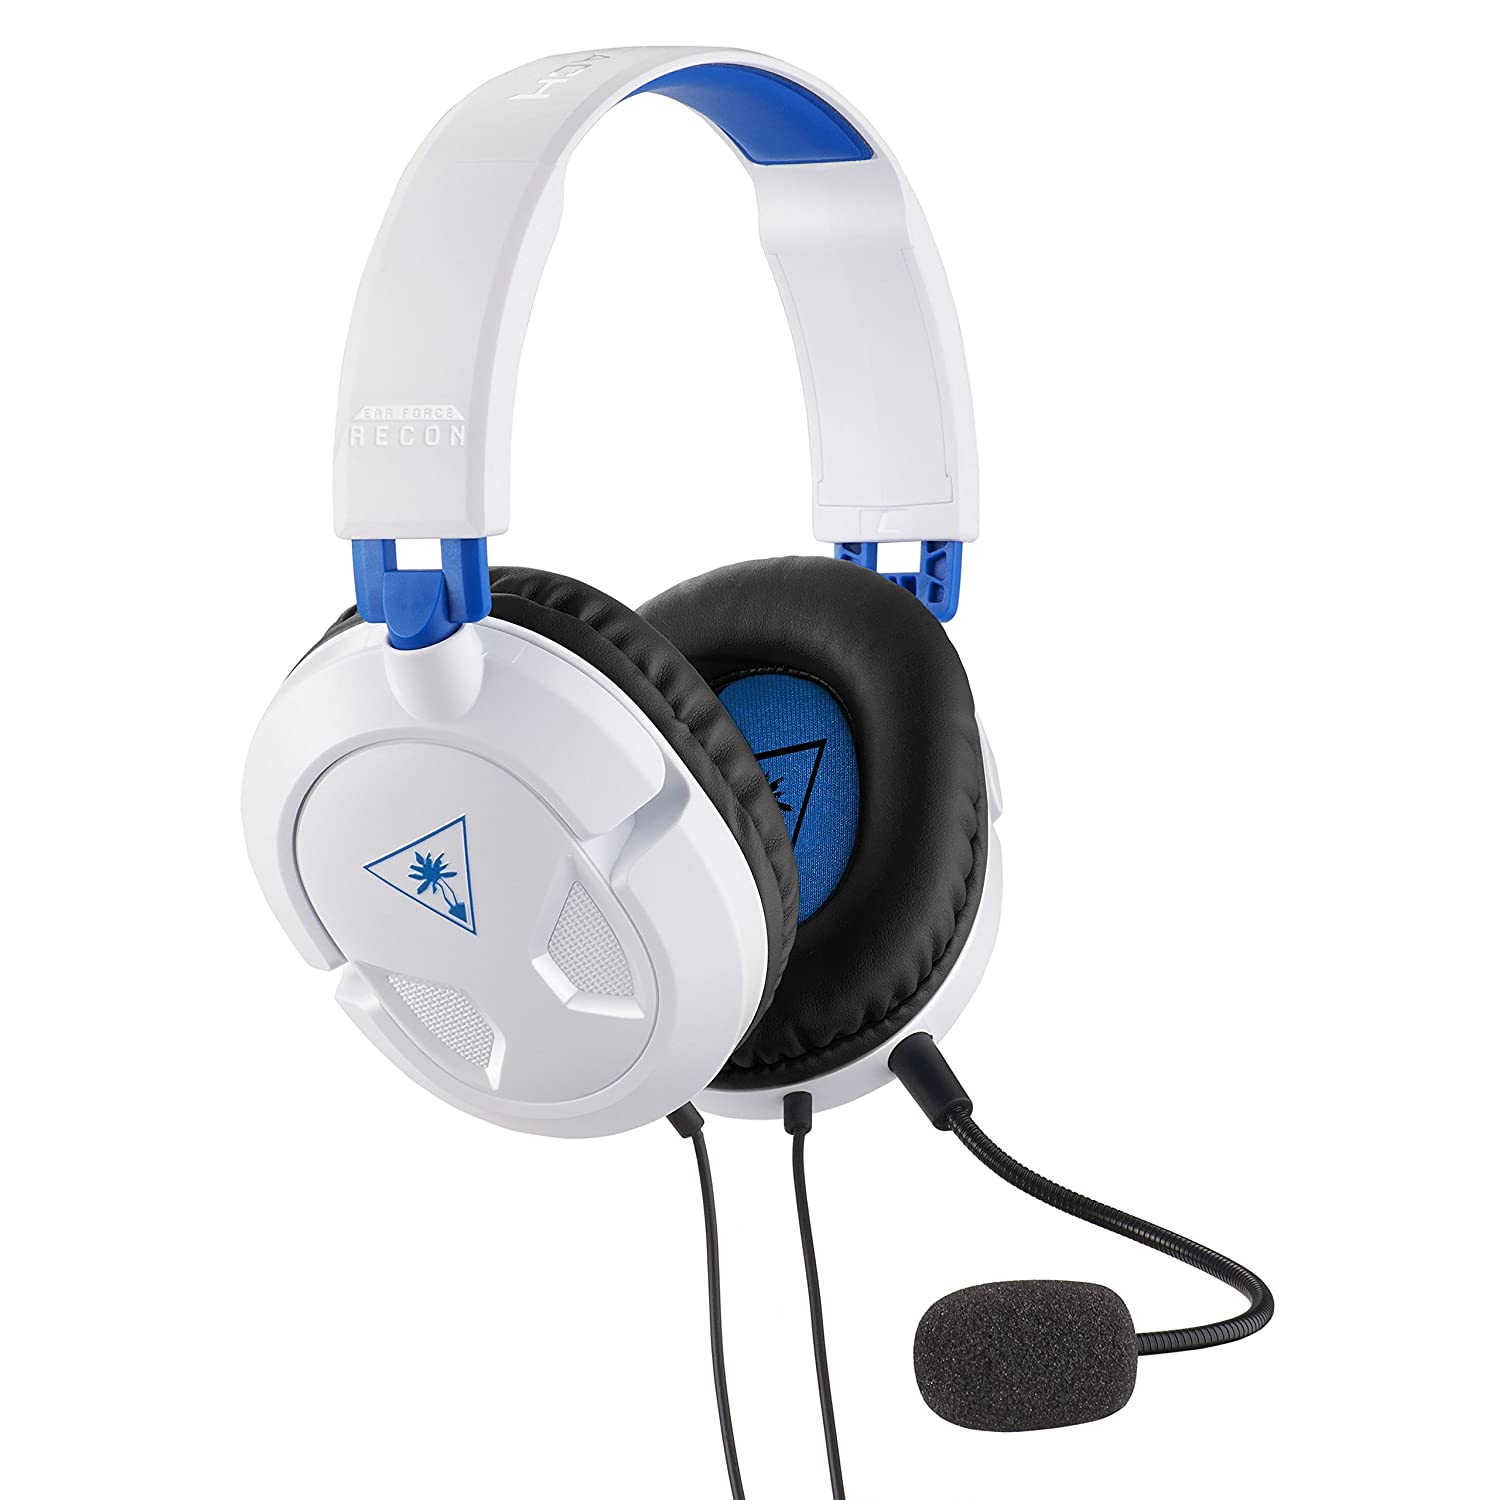 Turtle Beach タートルビーチ Recon 50P White ゲーミングヘッドセット for PS4 Pro, PS4, Xbox One